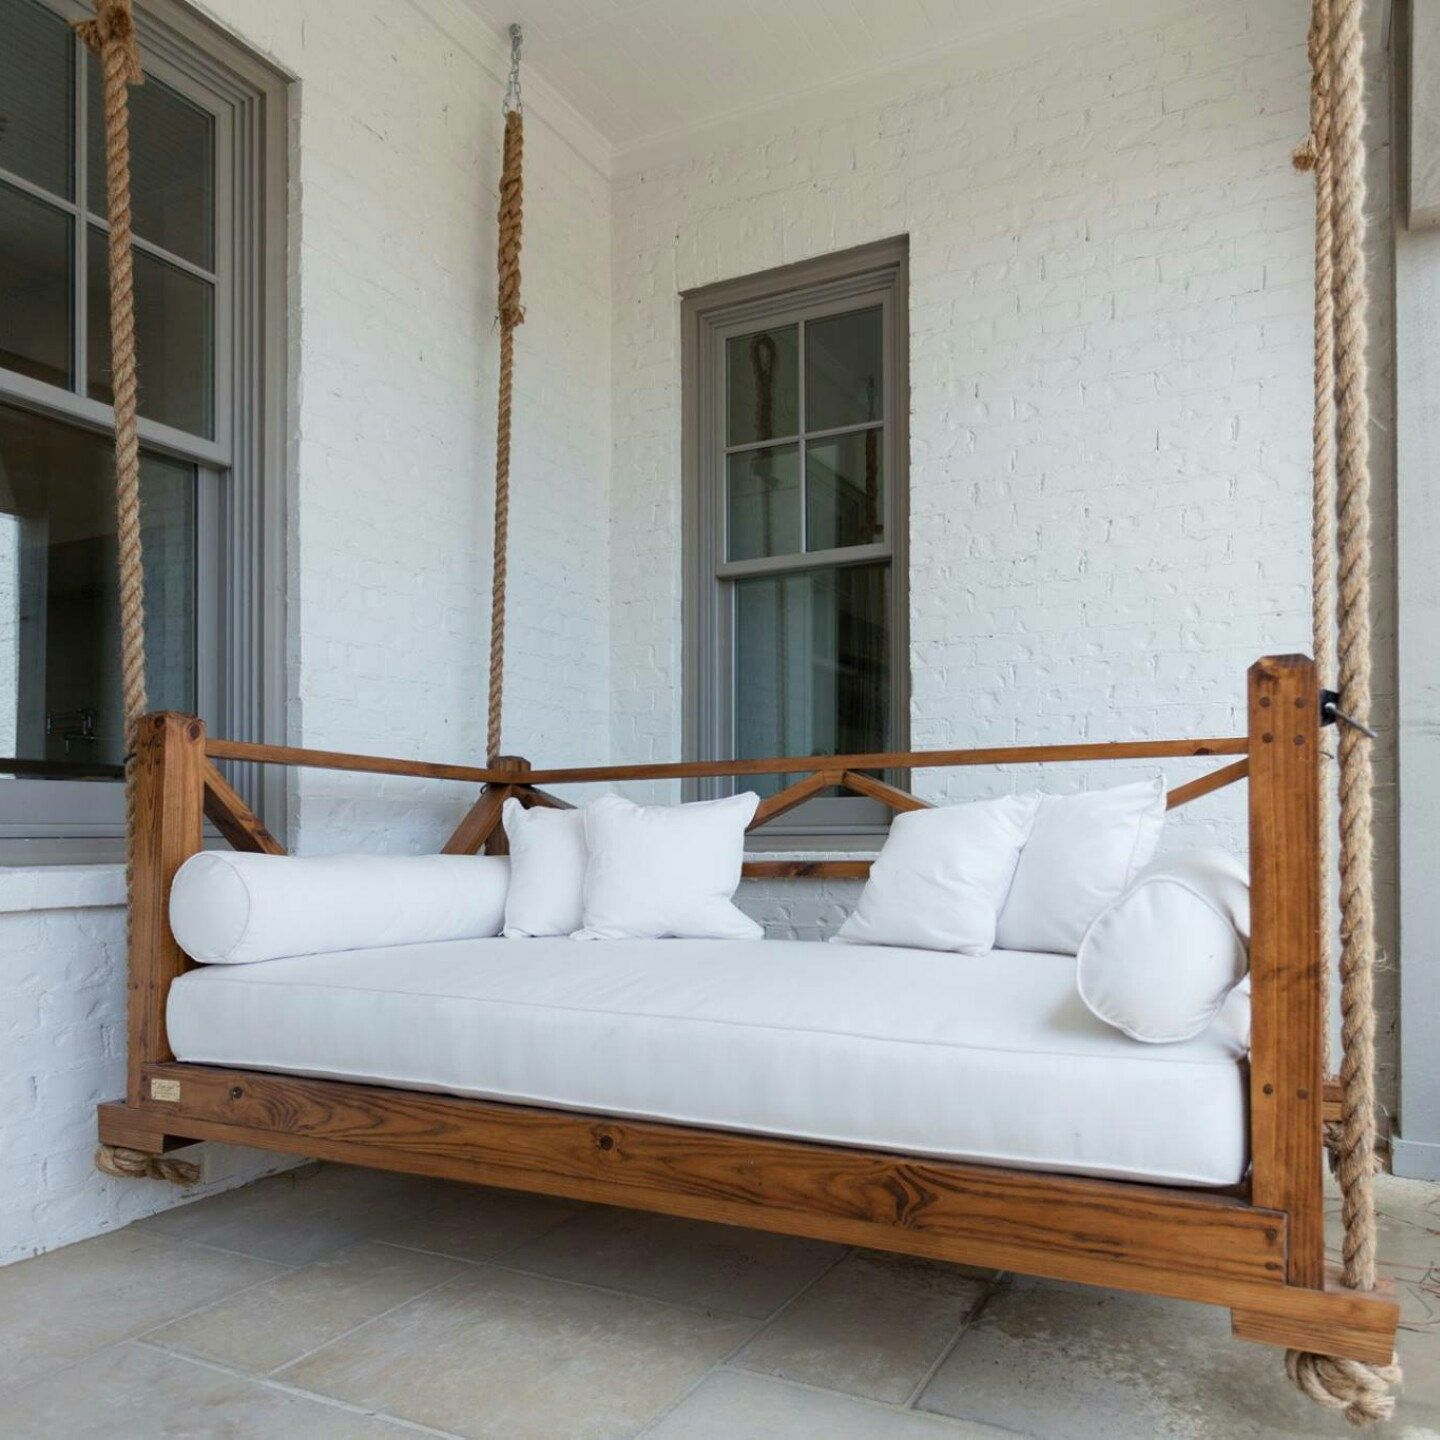 The Seaside Bed Swing Www Fouroakdesigns Com Porch Swing Bed